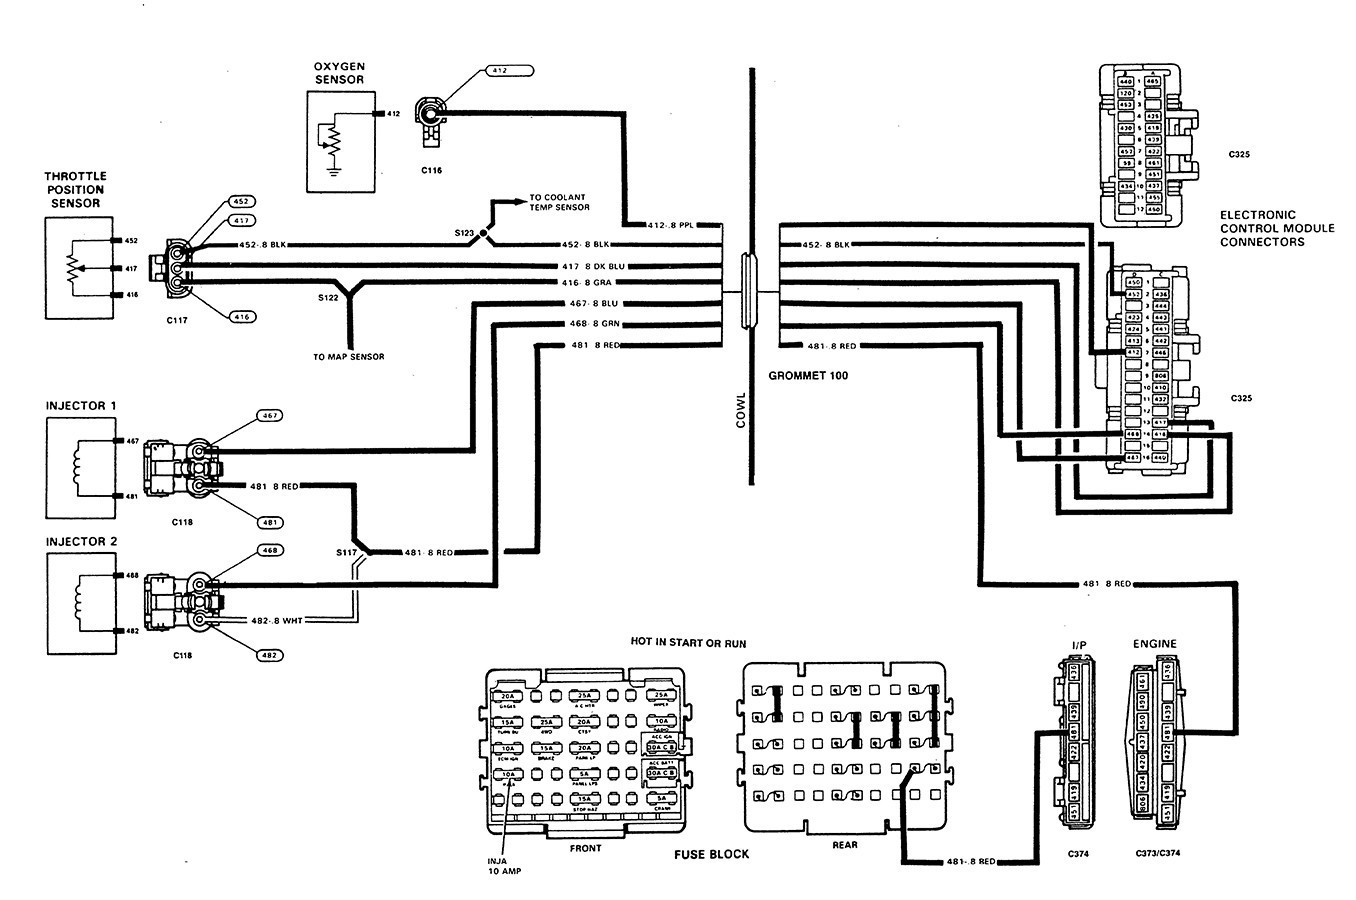 Jeep Grand Cherokee O2 Sensor Wiring Diagram